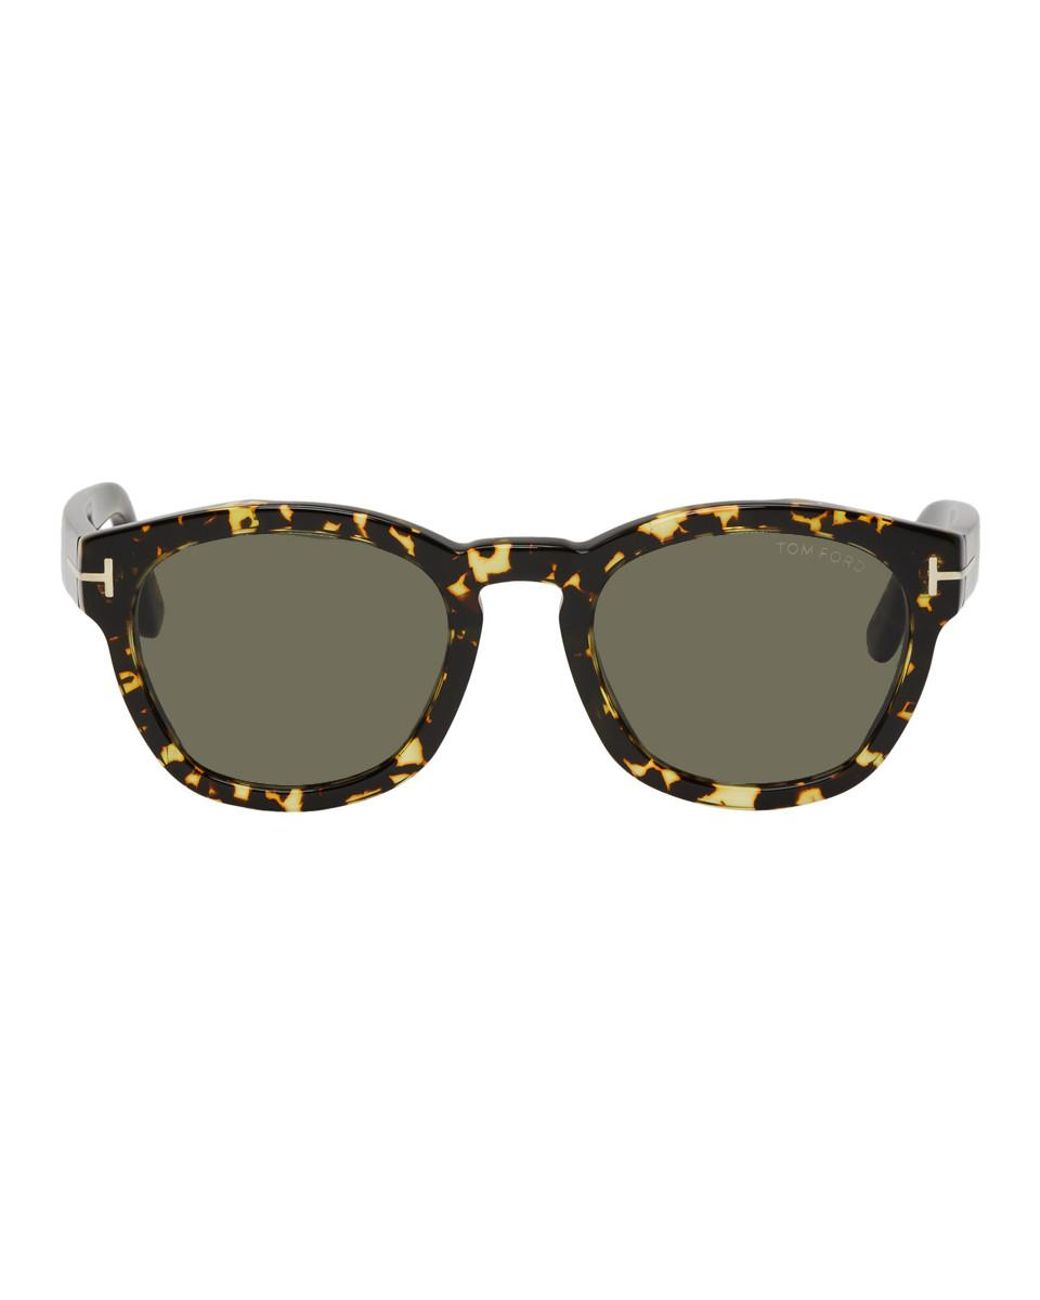 04b0f303cc Tom Ford Tortoiseshell Bryan Sunglasses for Men - Lyst